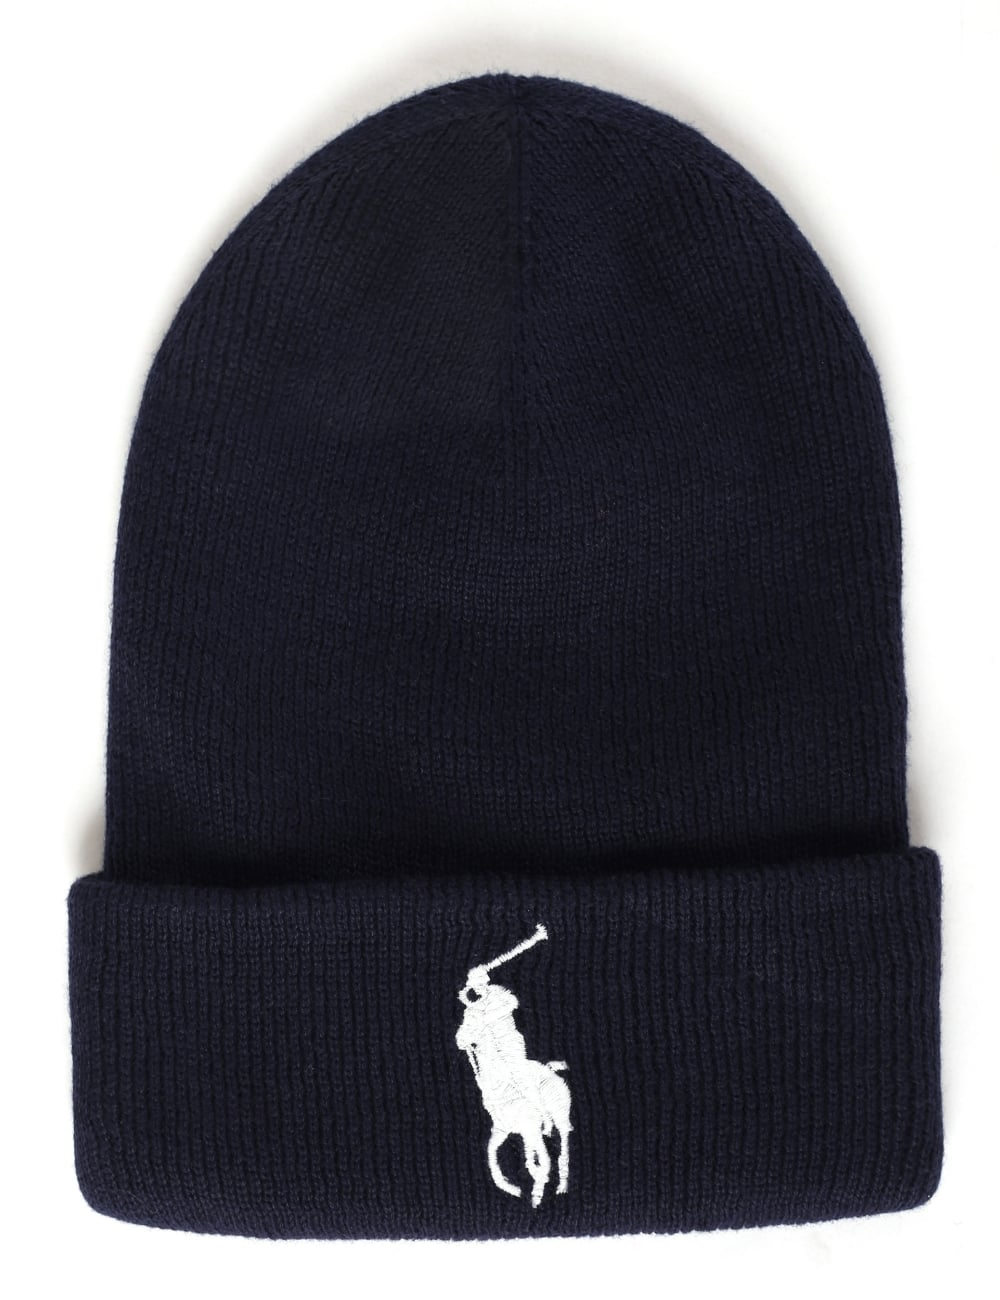 Polo Ralph Lauren Men s Big Pony Cuff Hat Newport Navy f3f38110bd73